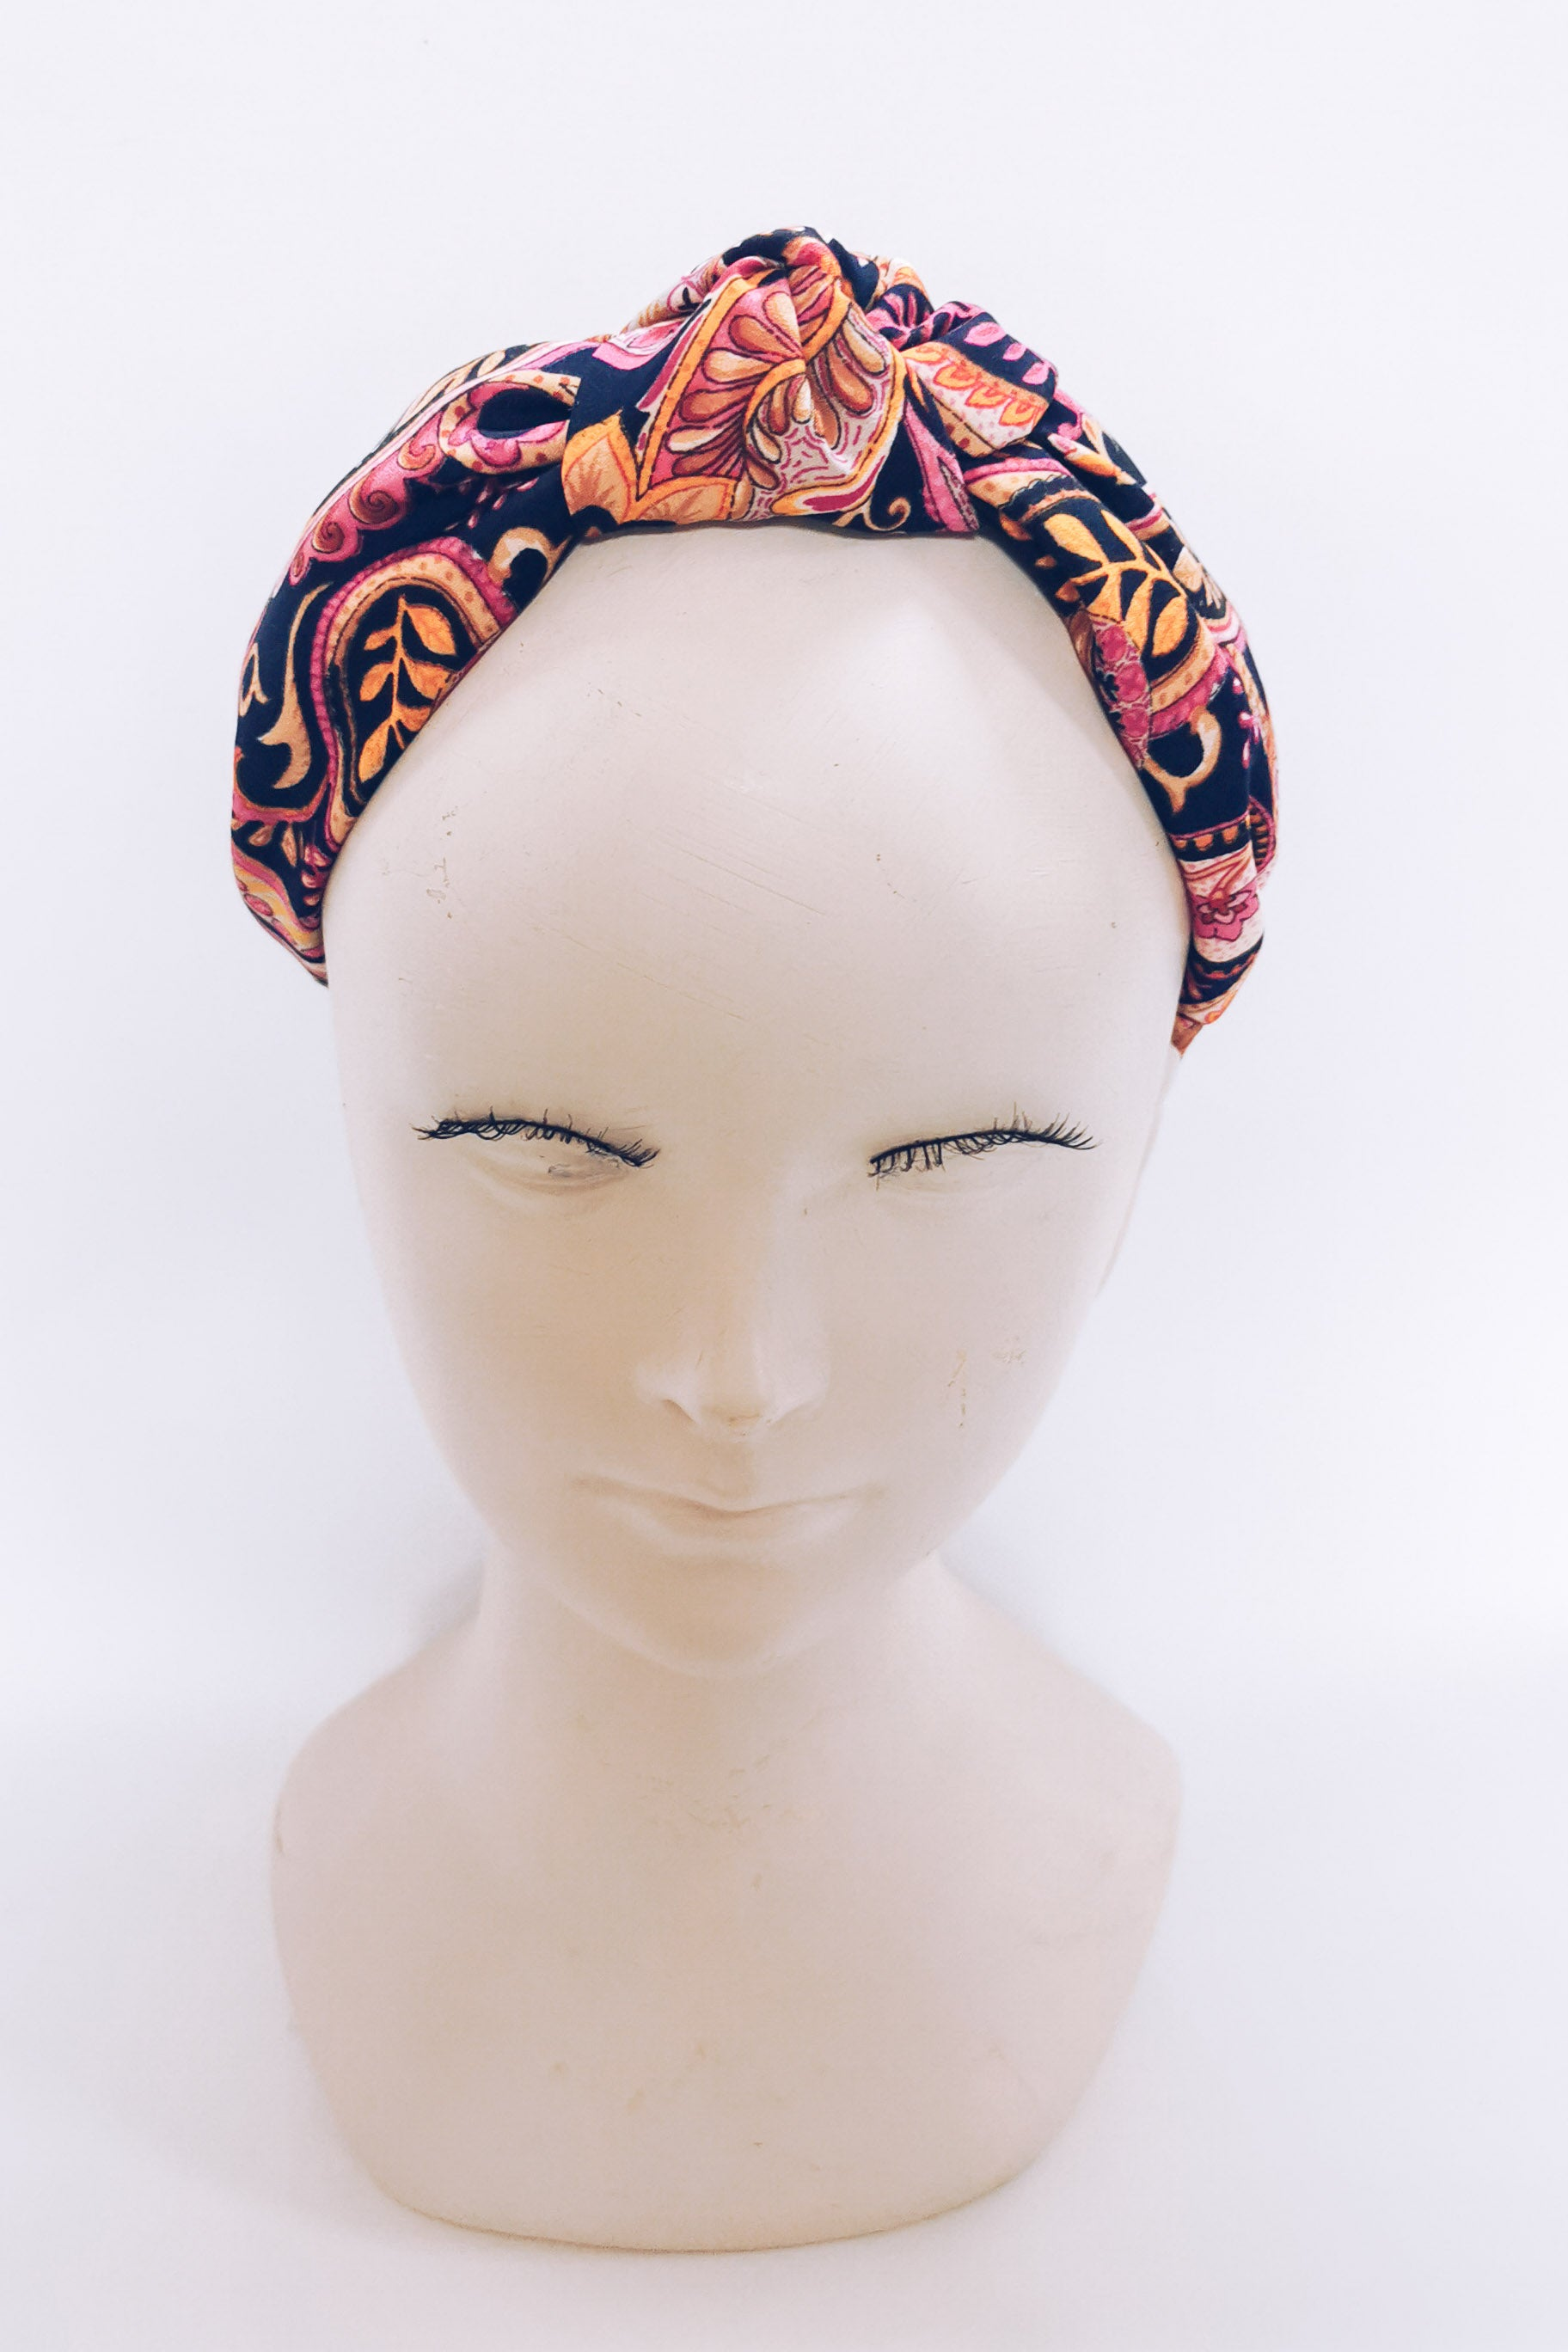 Paisley knot top headband - Pink & Navy